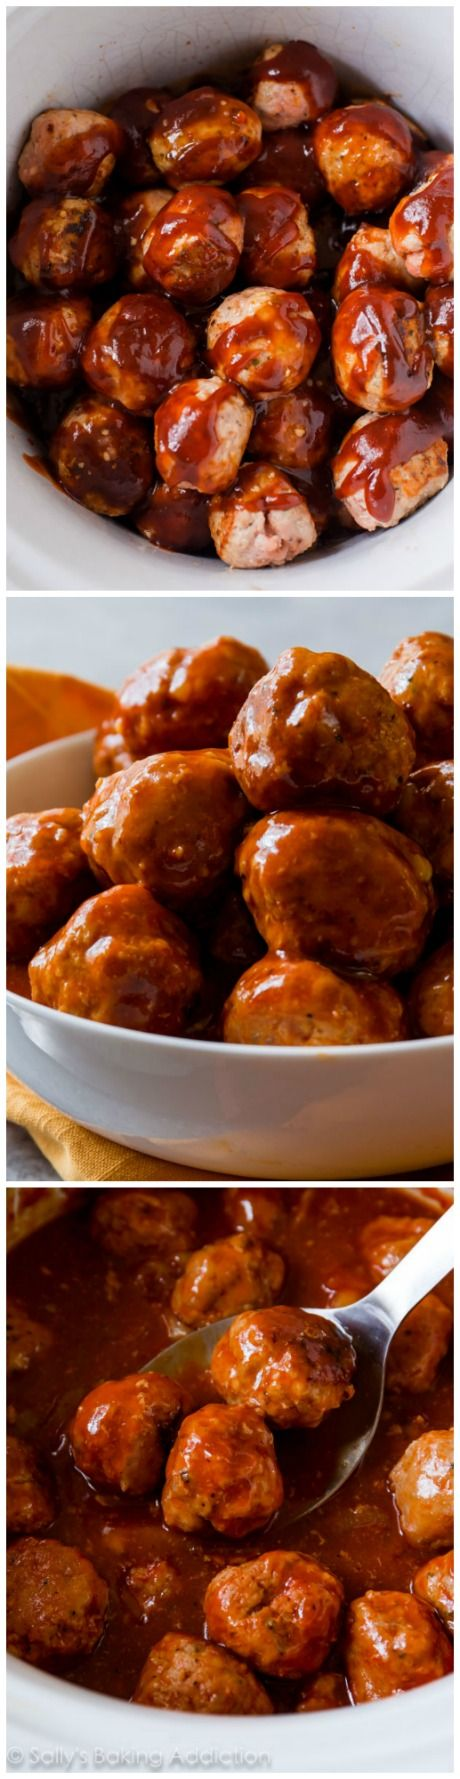 Easy crockpot meatballs whipped up in the slow cooker and smothered in zesty BBQ sauce made from only 2 ingredients!! Dinner or appetizer worthy!